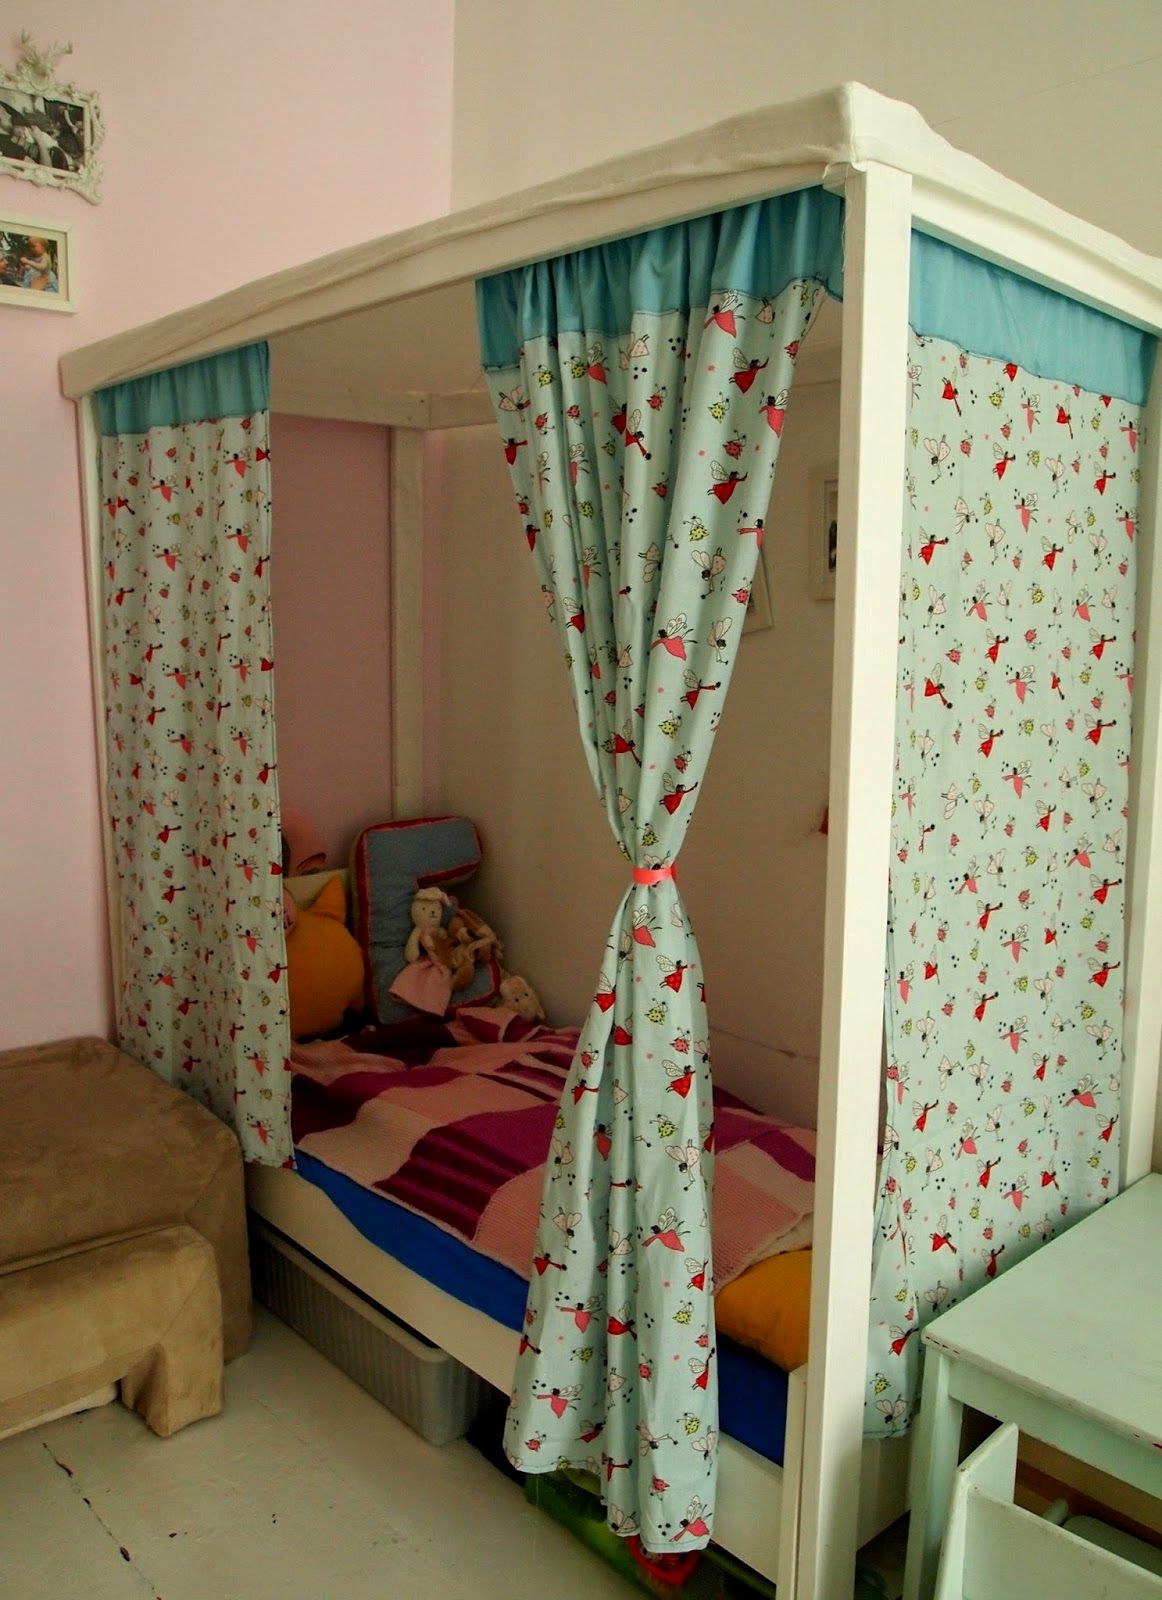 Diy Ideen Schlafzimmer Diy Ideen Diy Ideas Girl Bedroom Bed Ideas Kinderbett